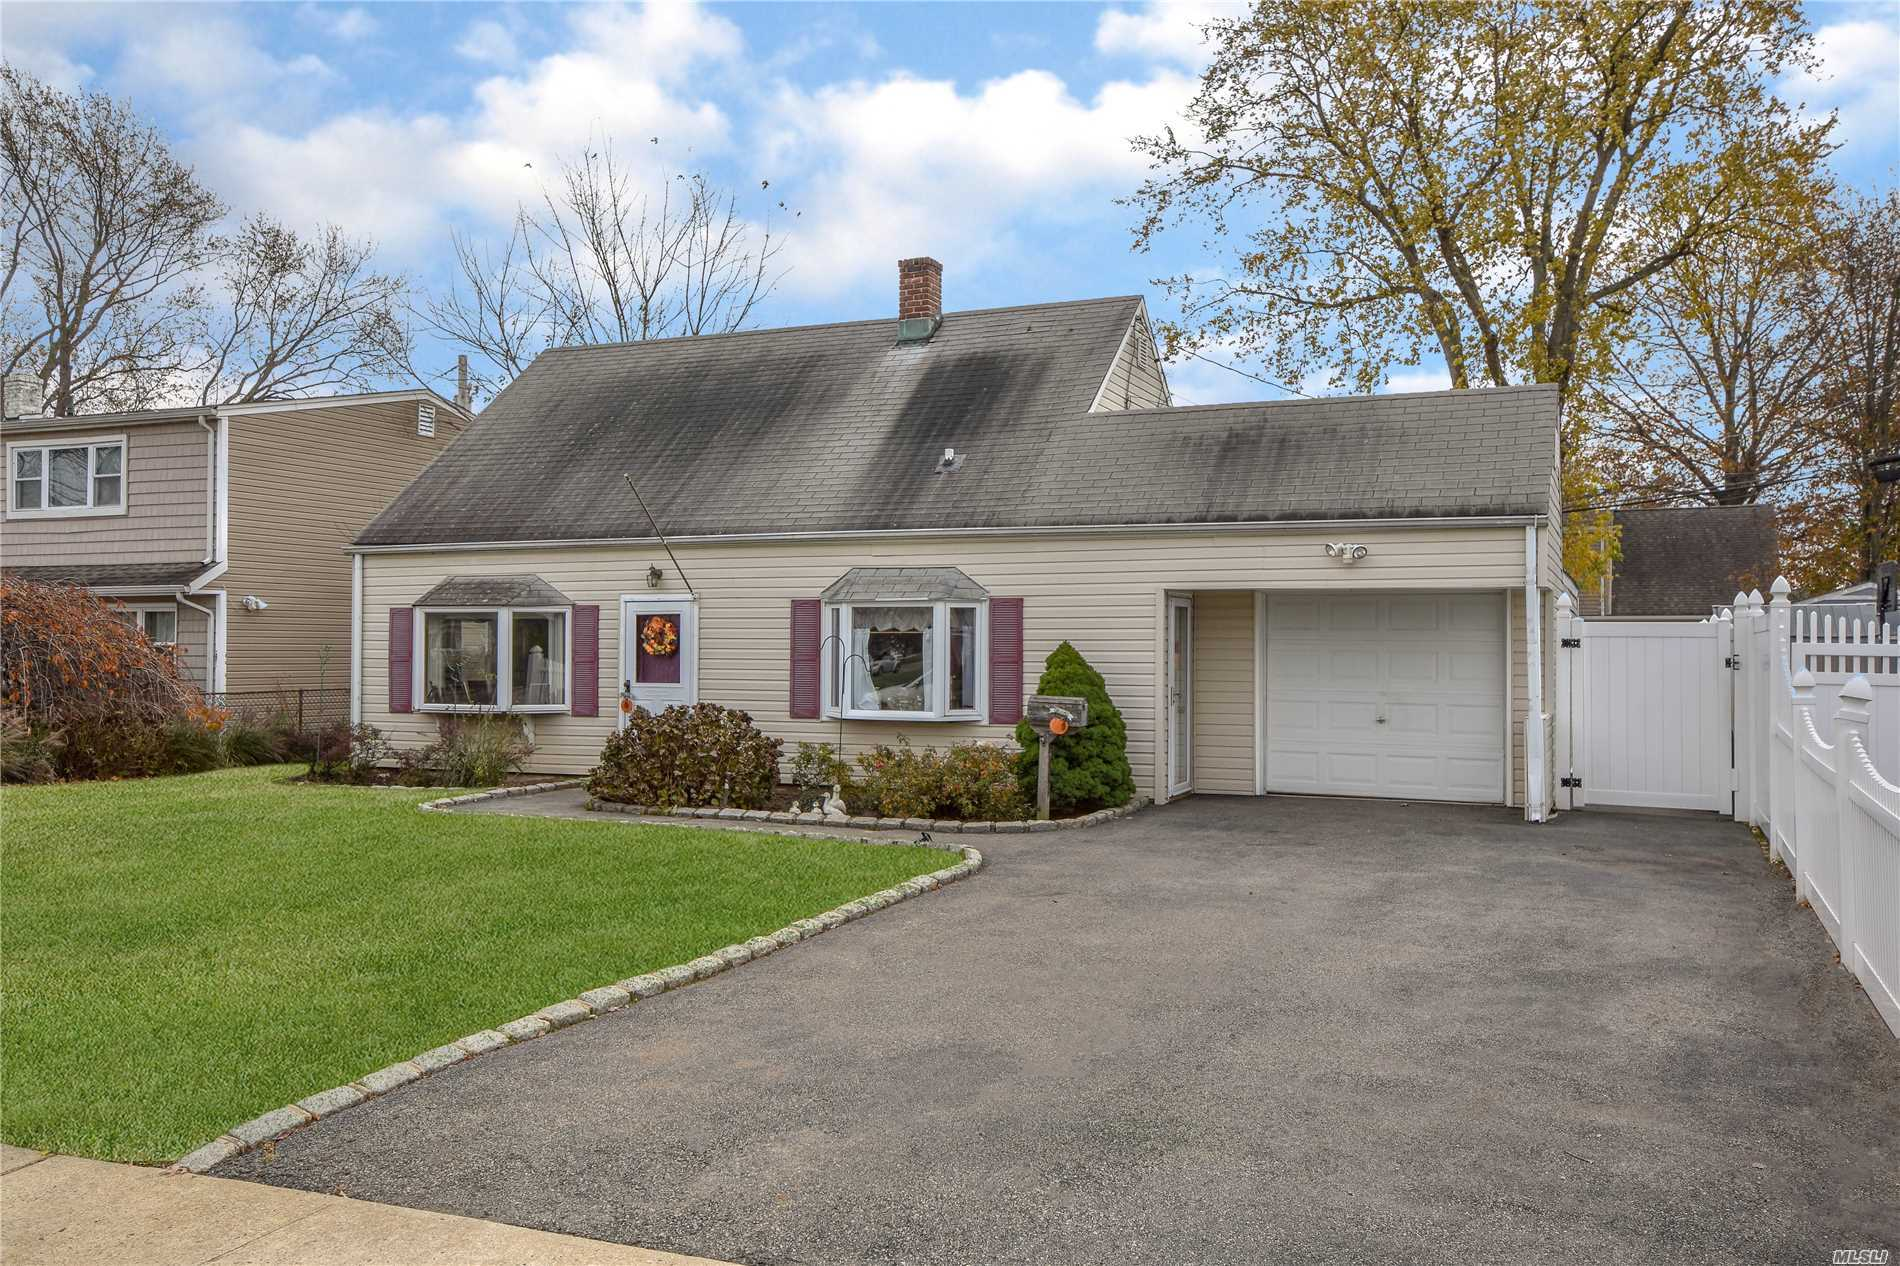 Nice 3 Bed 1 Bath Cape Cod Located In The Desirable Levittown Schools. Great 60X100 Lot , Make This Home Your Own, Great Location Close To All, Schools, Highways, Transportation, Spacious Eik, Living Room And Formal Dining Room. 1 Car Garage. Don't Miss This Awesome Opportunity At This Great Price With Low Taxes!!!...